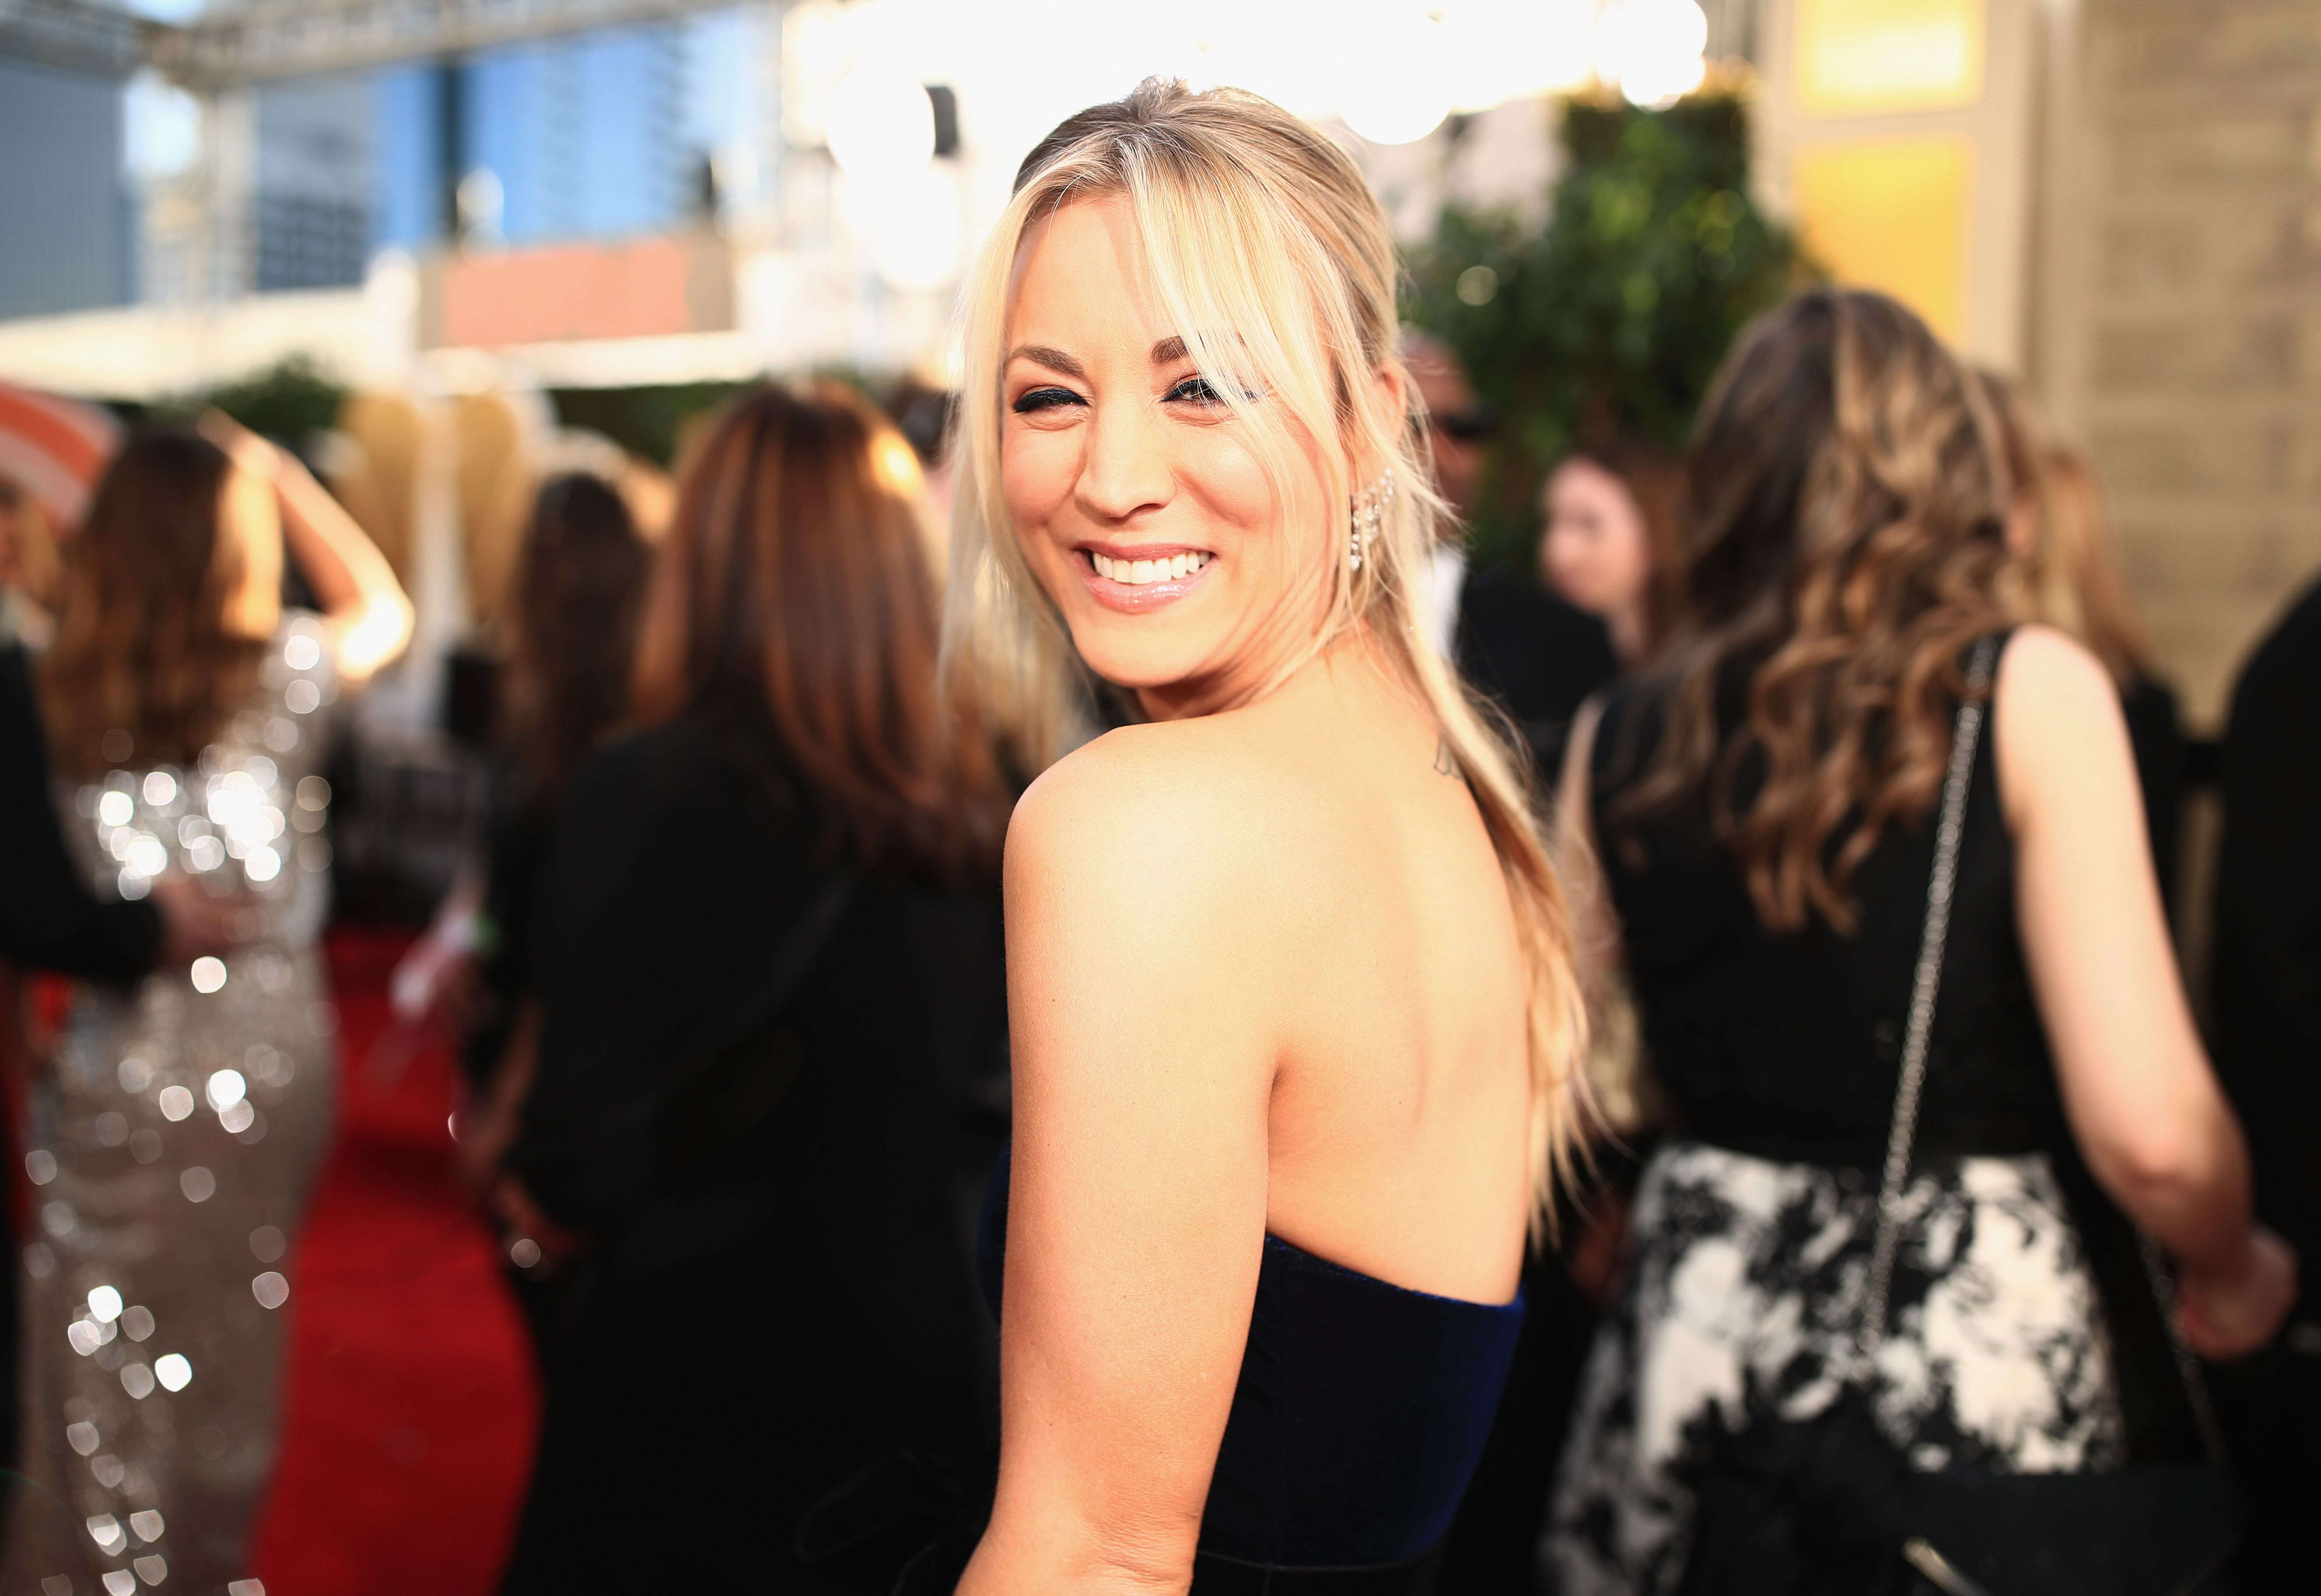 'Big Bang Theory's' Kaley Cuoco Just Posted Her Intense Workout To Instagram